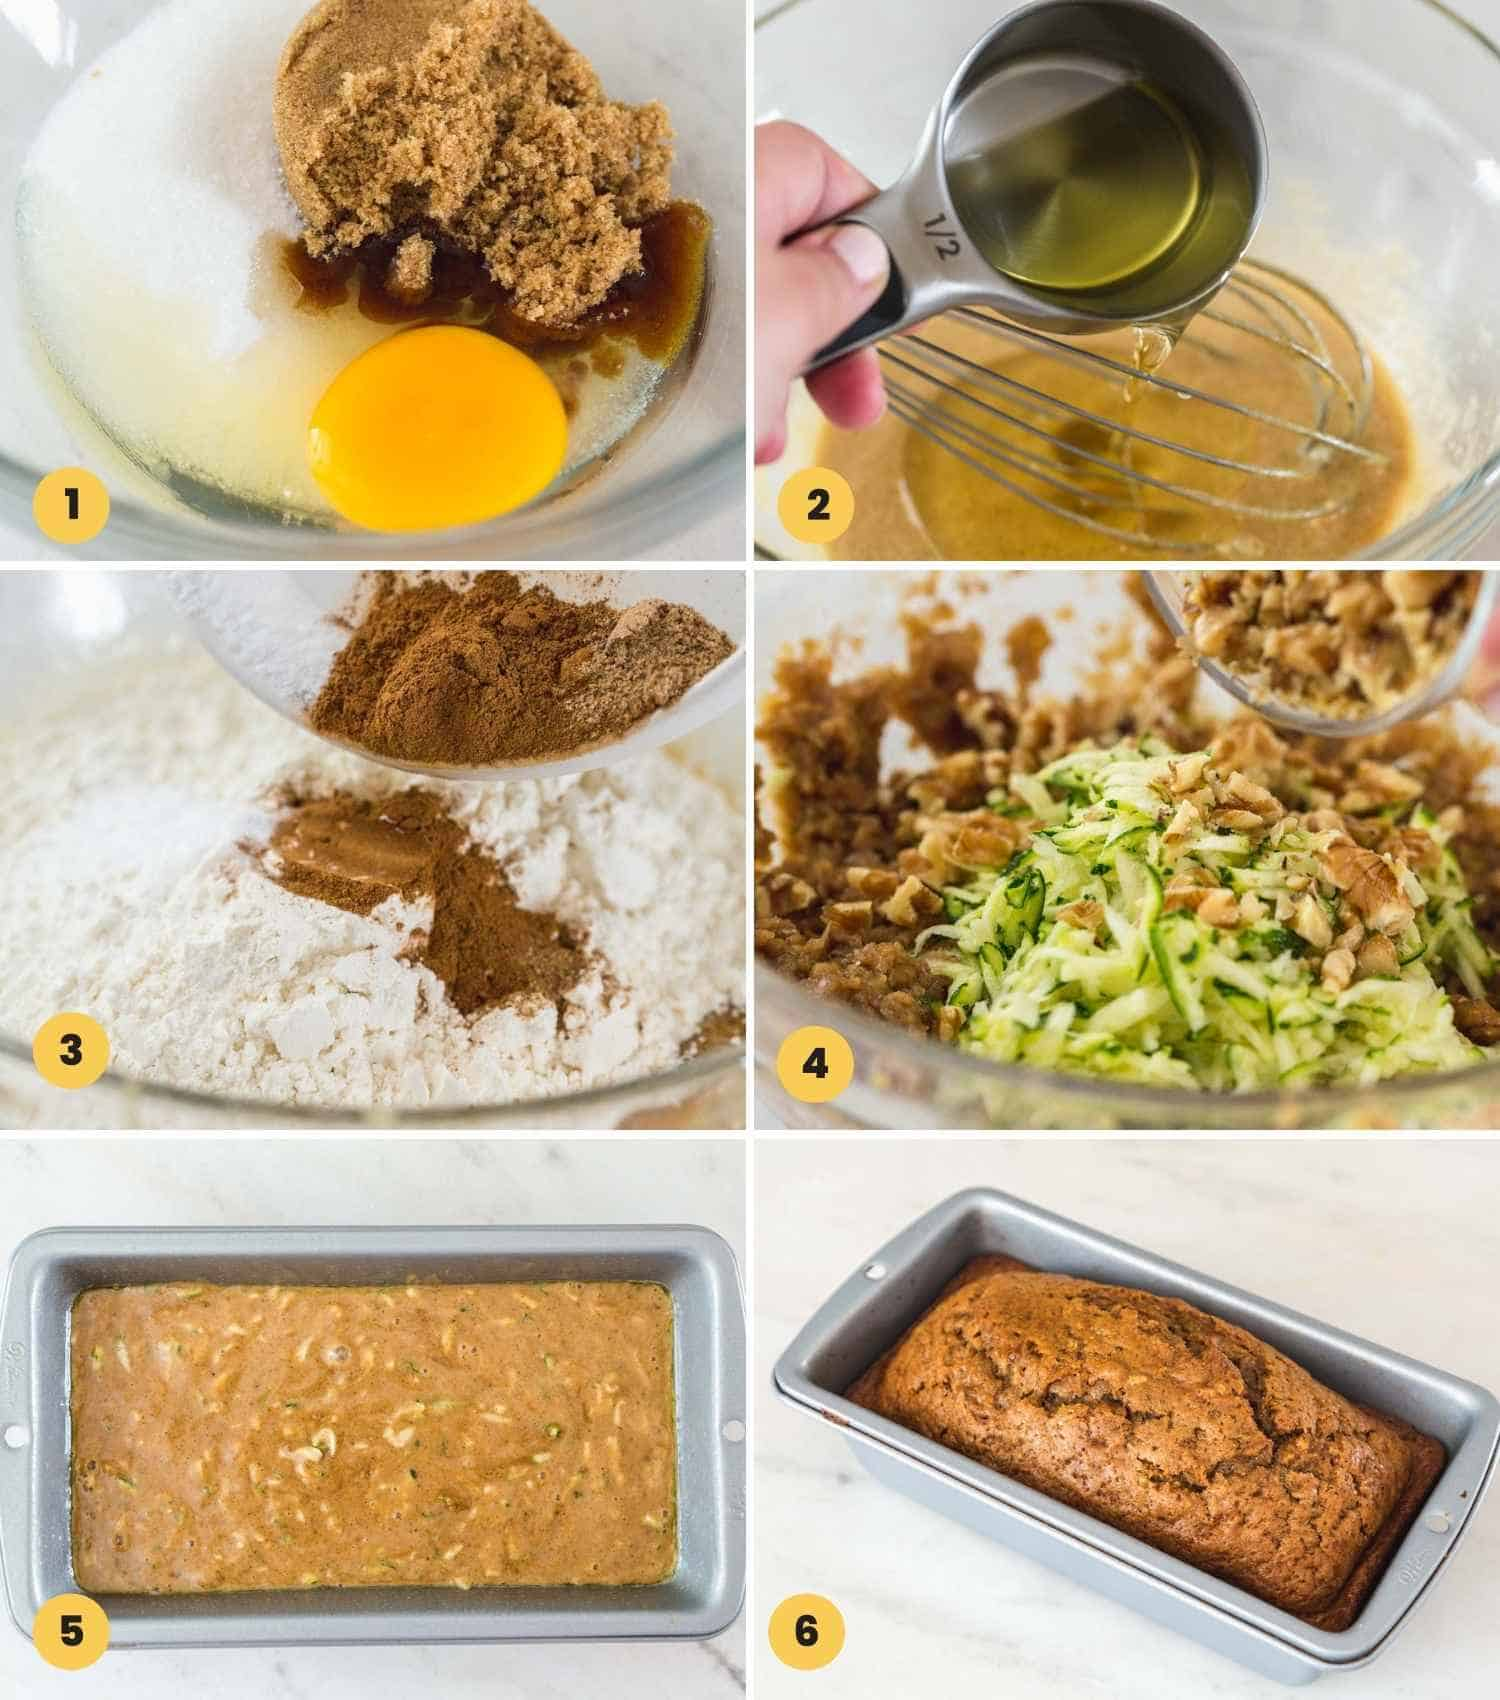 How to make zucchini bread, step by step shown in a collage of 6 images